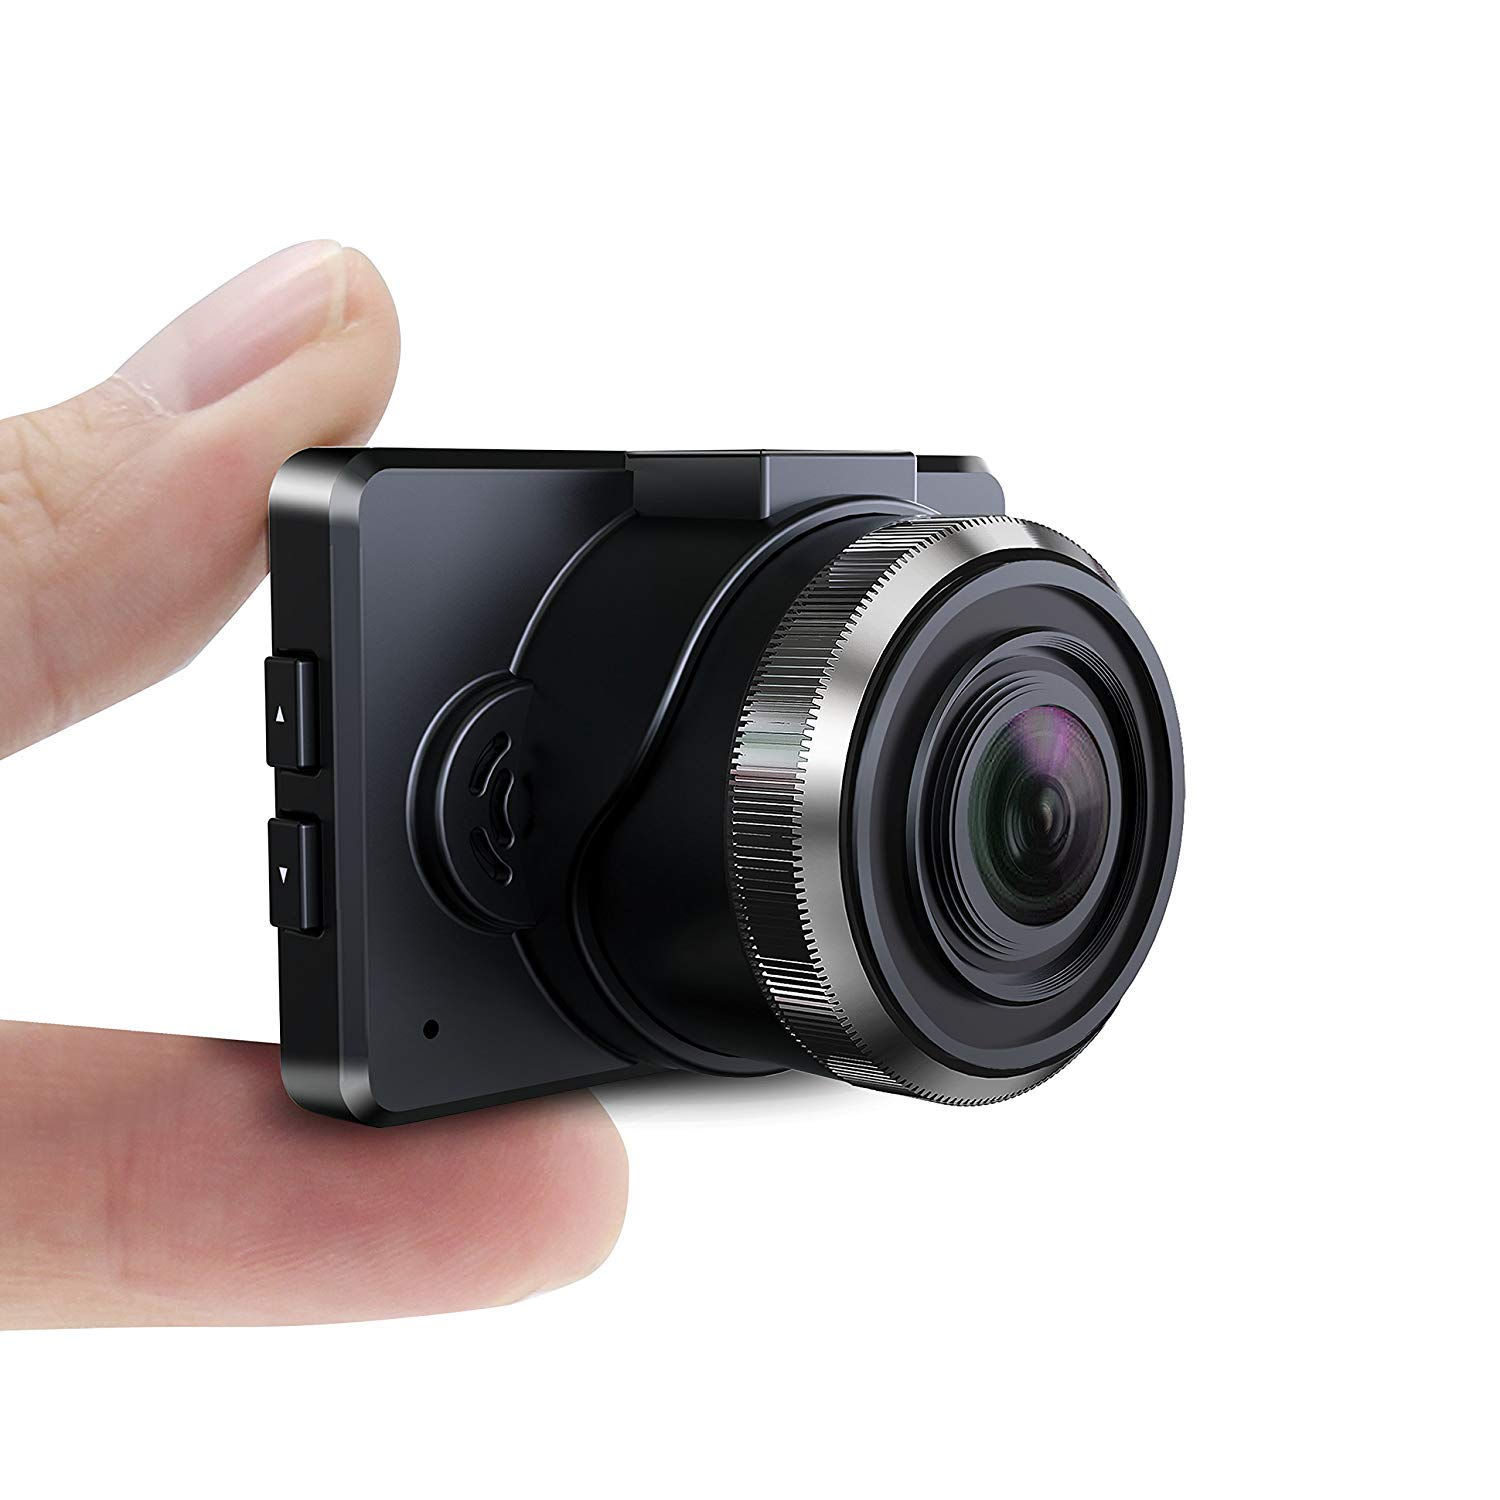 """Dash Cam for Cars, PORTOCAM T17 1.5"""" LCD HD 1080P 140° Wide Angle Mini Car Dashboard Camera with G-Sensor, Loop Recording and Night Vision, SD Card Not Included"""